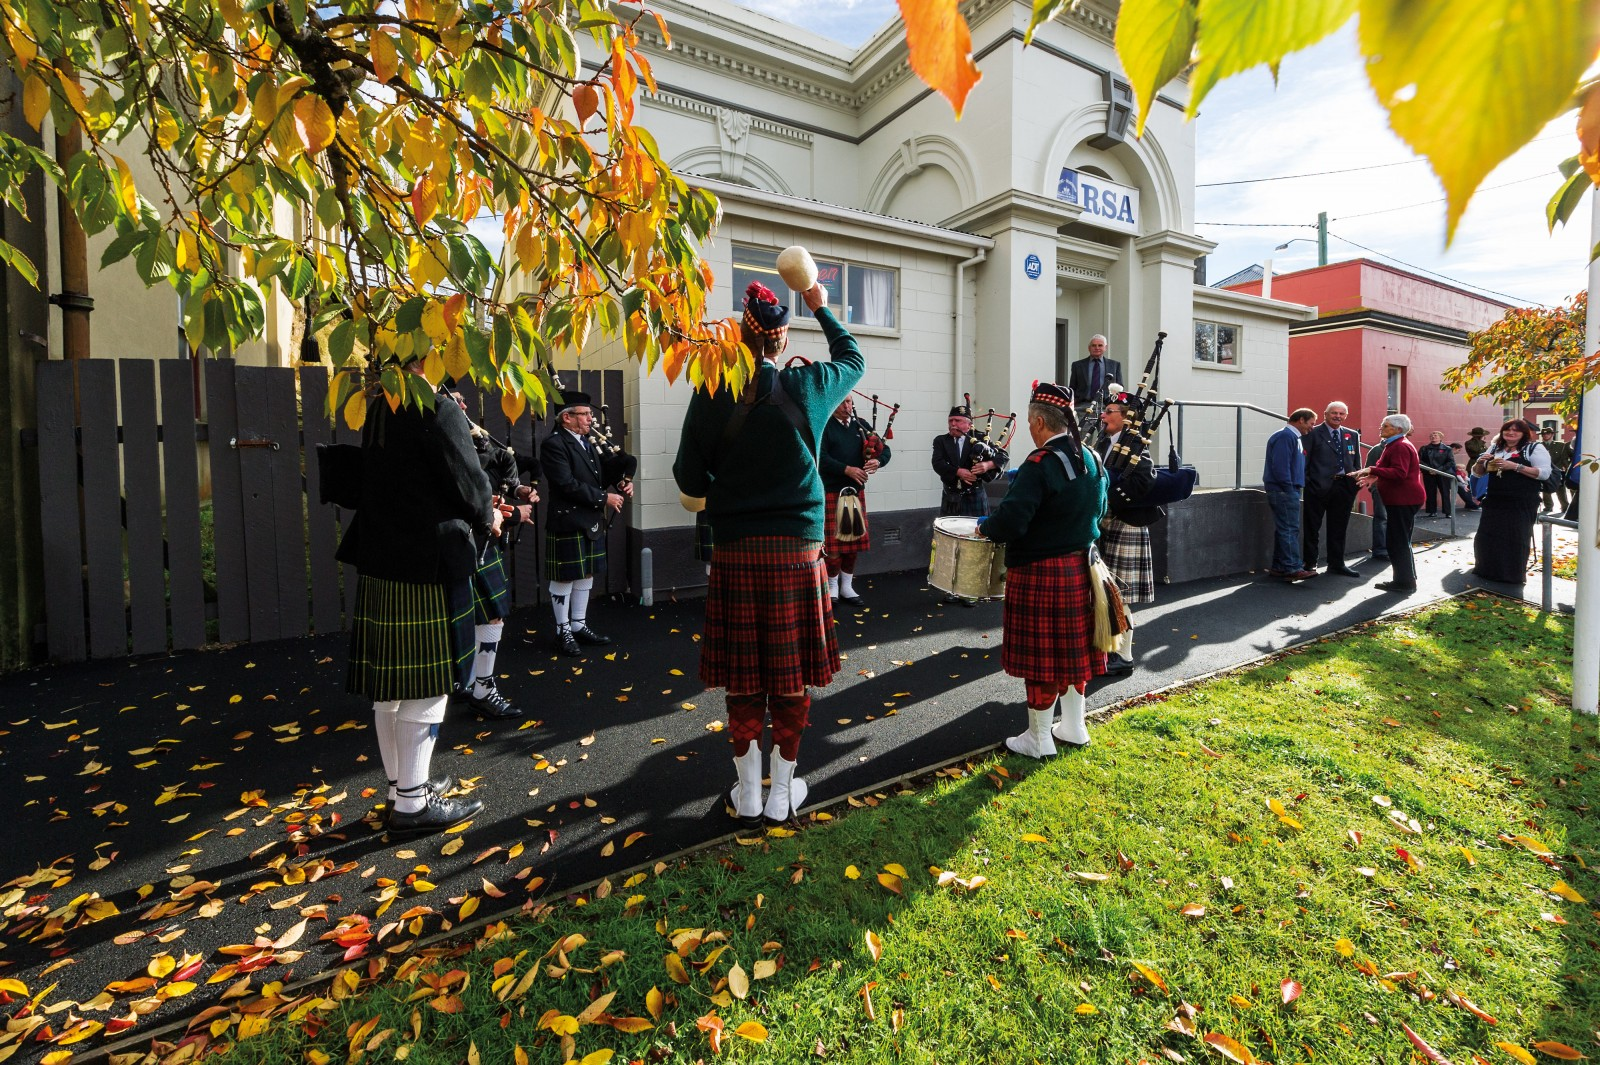 East Otago's colours of gold and green are shown off in autumn when they form a poignant backdrop for ANZAC Day commemorations. Here a pipe band offers a lilting soundtrack to the ritual of whisky, cups of tea and sandwiches in the Palmerston RSA. Inside, a photograph honours one of New Zealand's most decorated war heroes: although bomber pilot James 'Fraser' Barron was born in North Otago, his mother lived in Palmerston for many years.